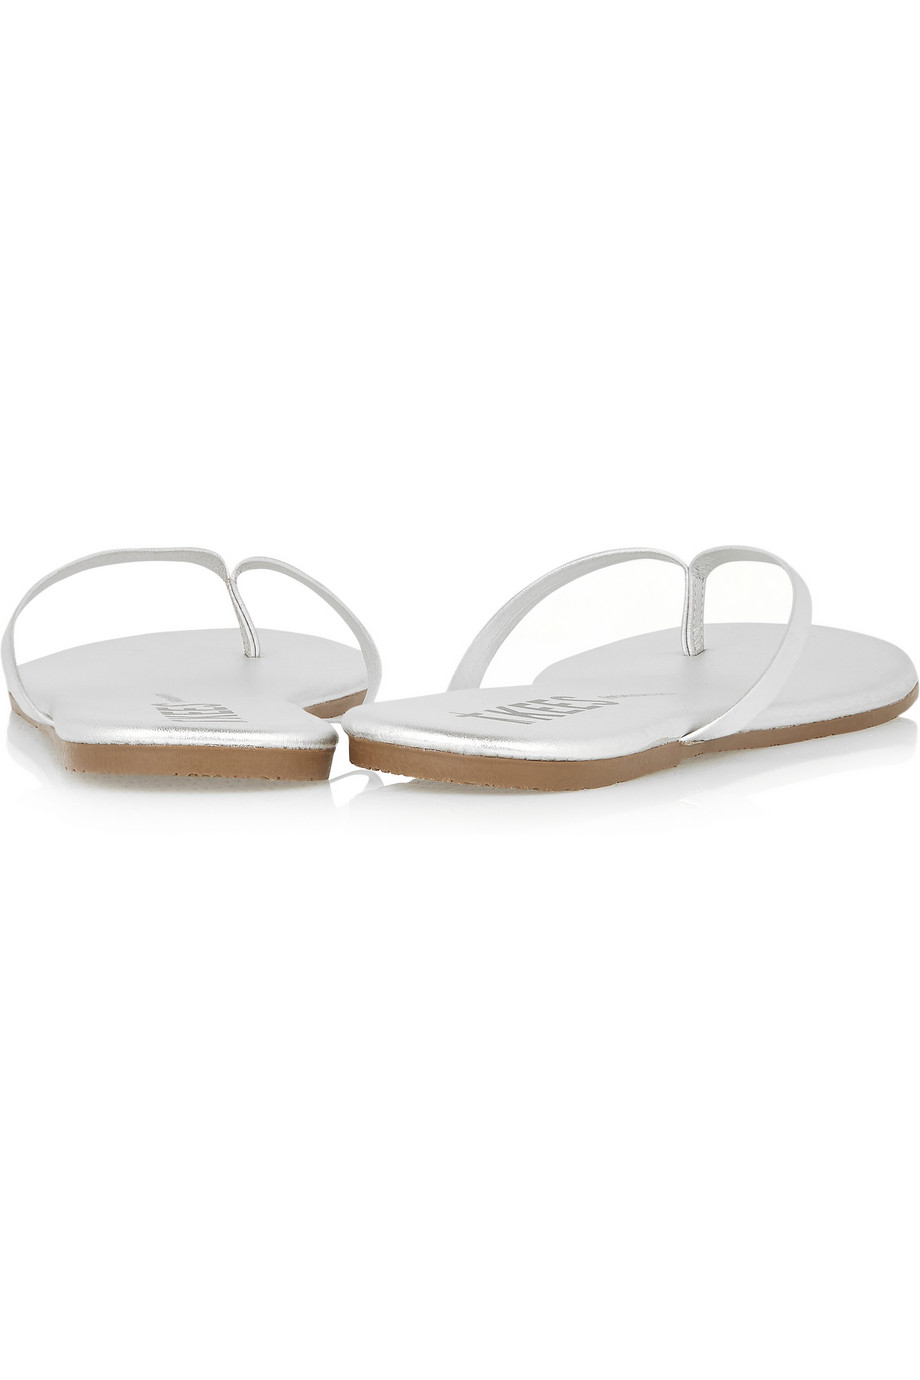 8d2d6ff0c02b TKEES Lily Metallic Leather Flip Flops in Metallic - Lyst